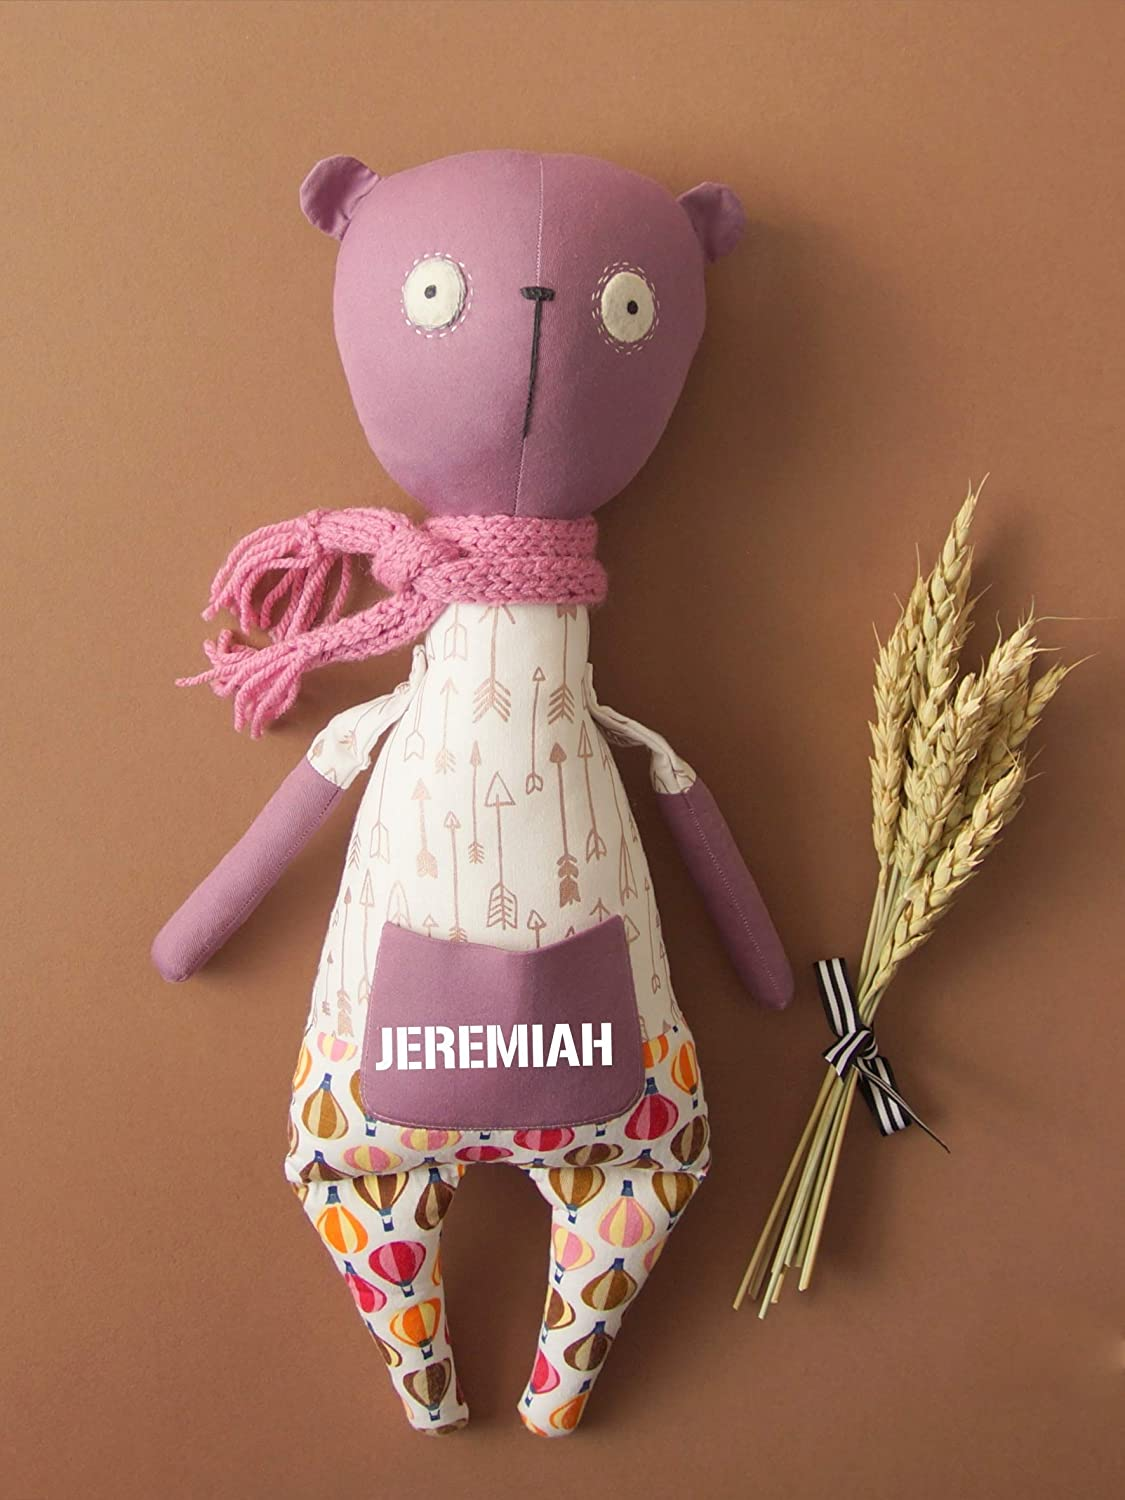 Valentines Day Gift Baby shower Personalised purple with balloon memory rag bear Stuffed primitive toy Woodland animal Soft keepsake gift Birthday Easter